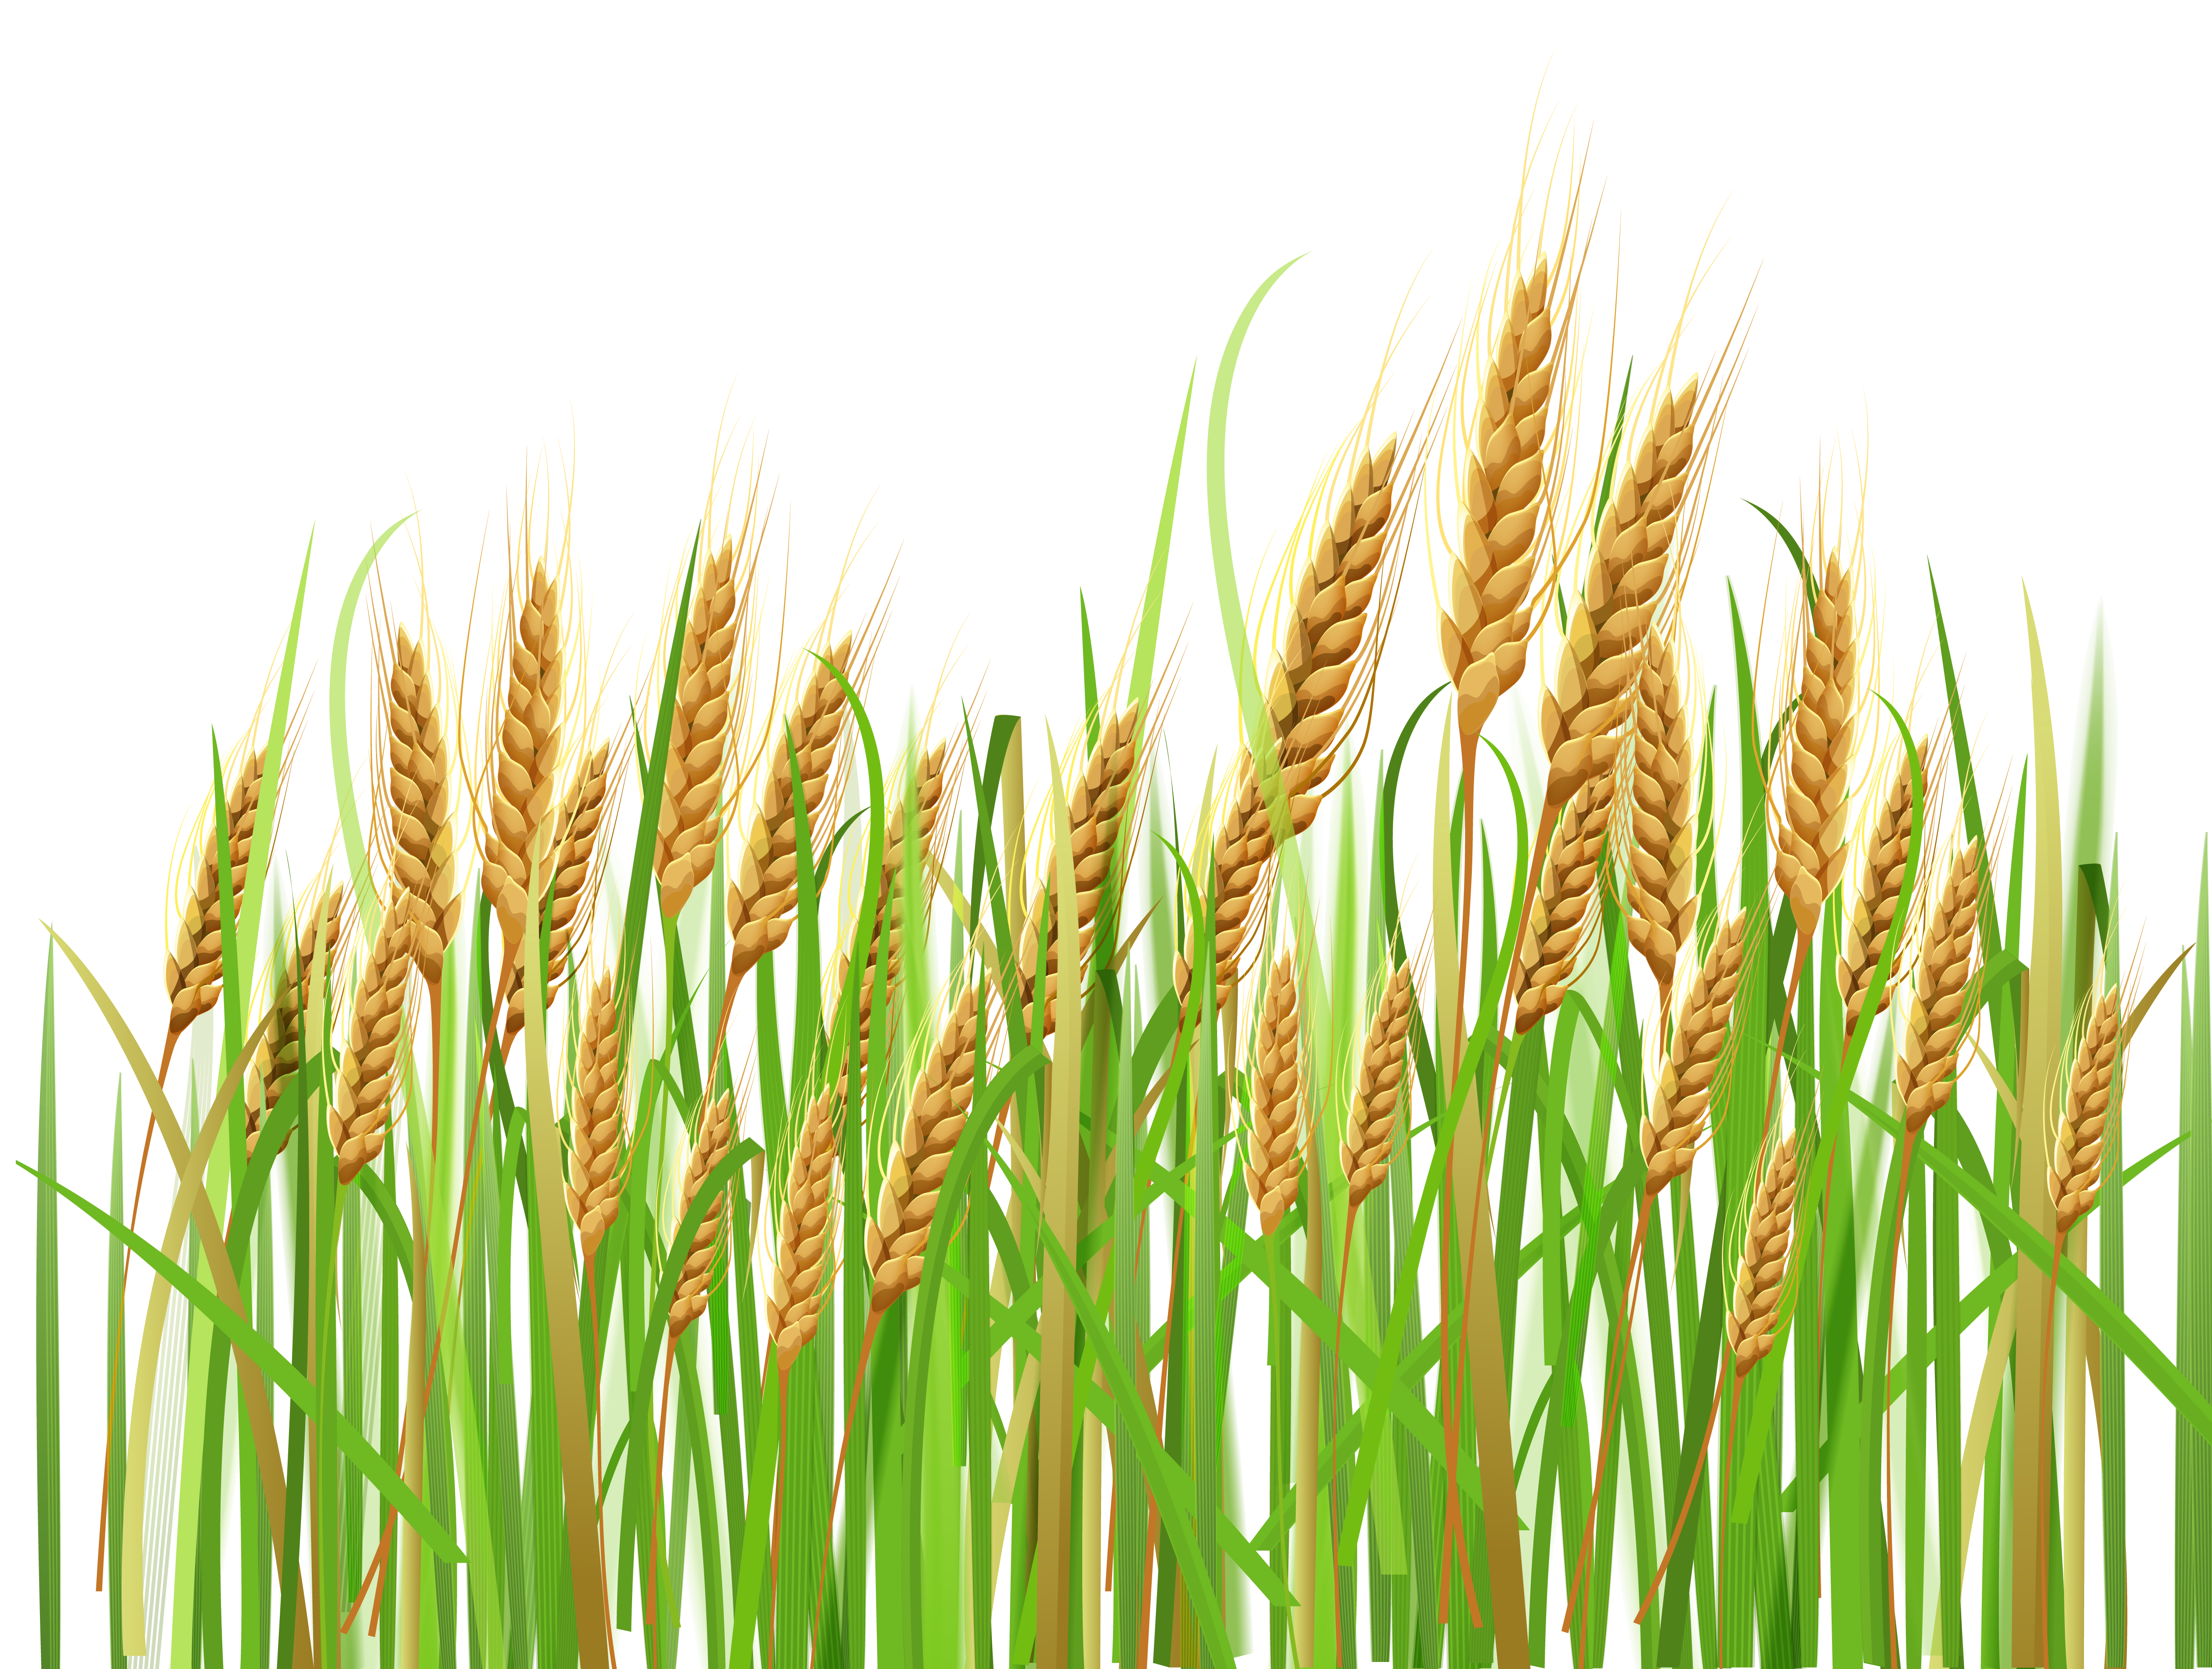 Cash clipart cash crop. Ears of wheat png